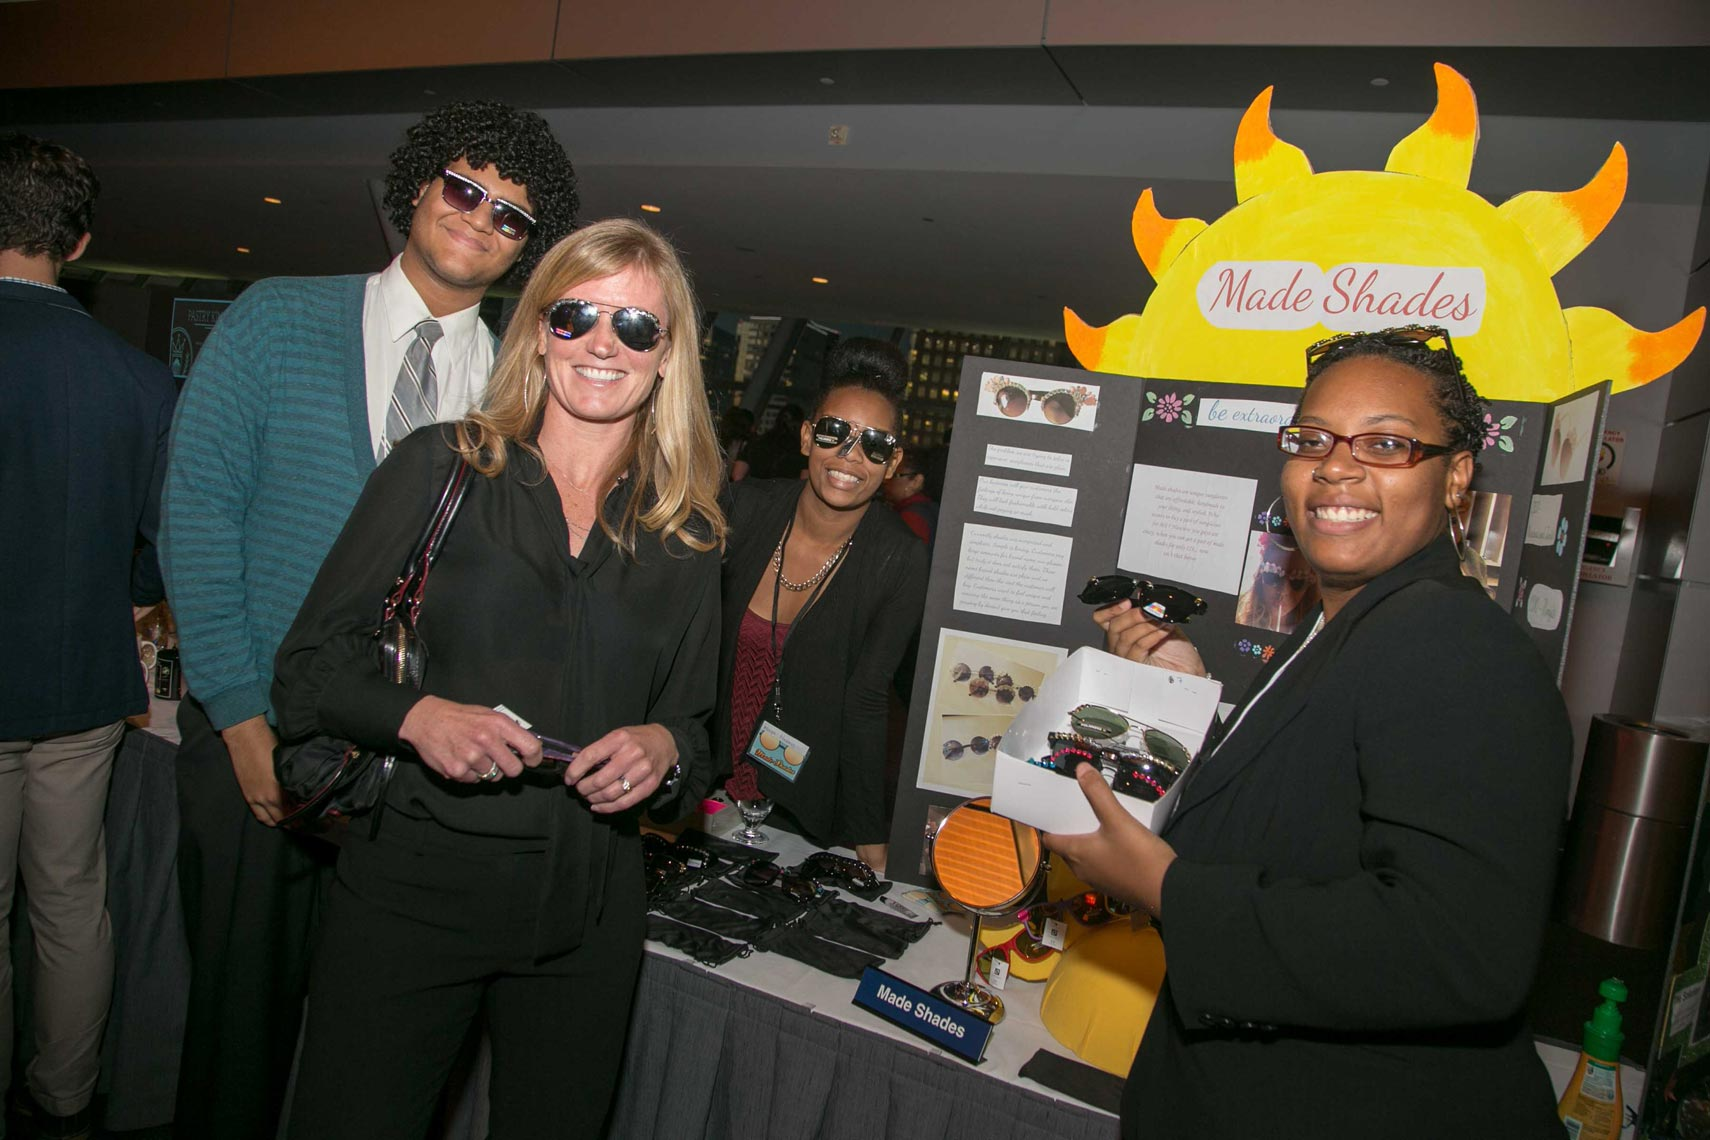 Made Shades Smiles at BUILDfest Student Business Expo